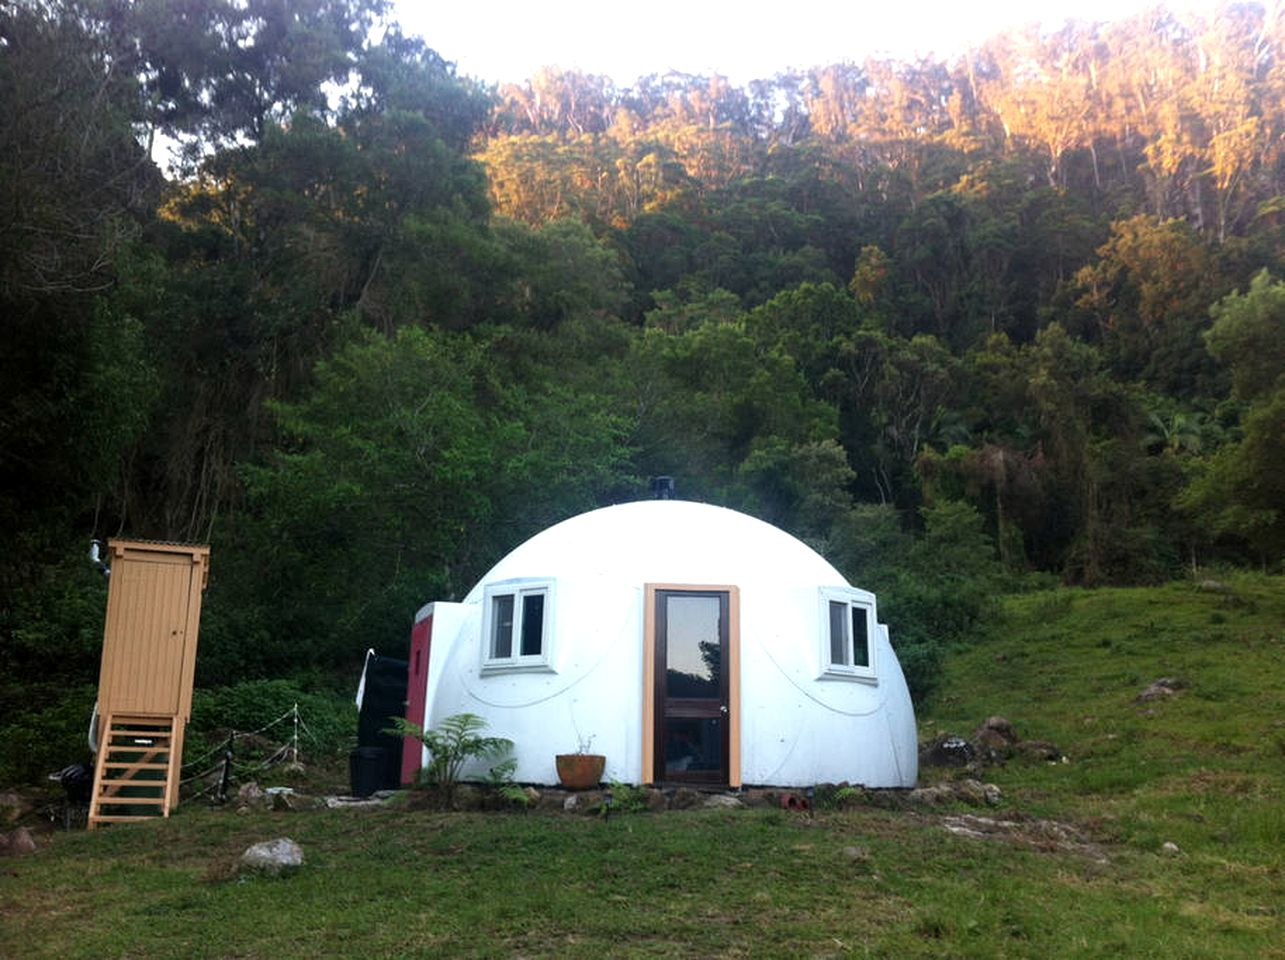 Bubbles & Domes (Wilsons Creek, New South Wales, Australia)